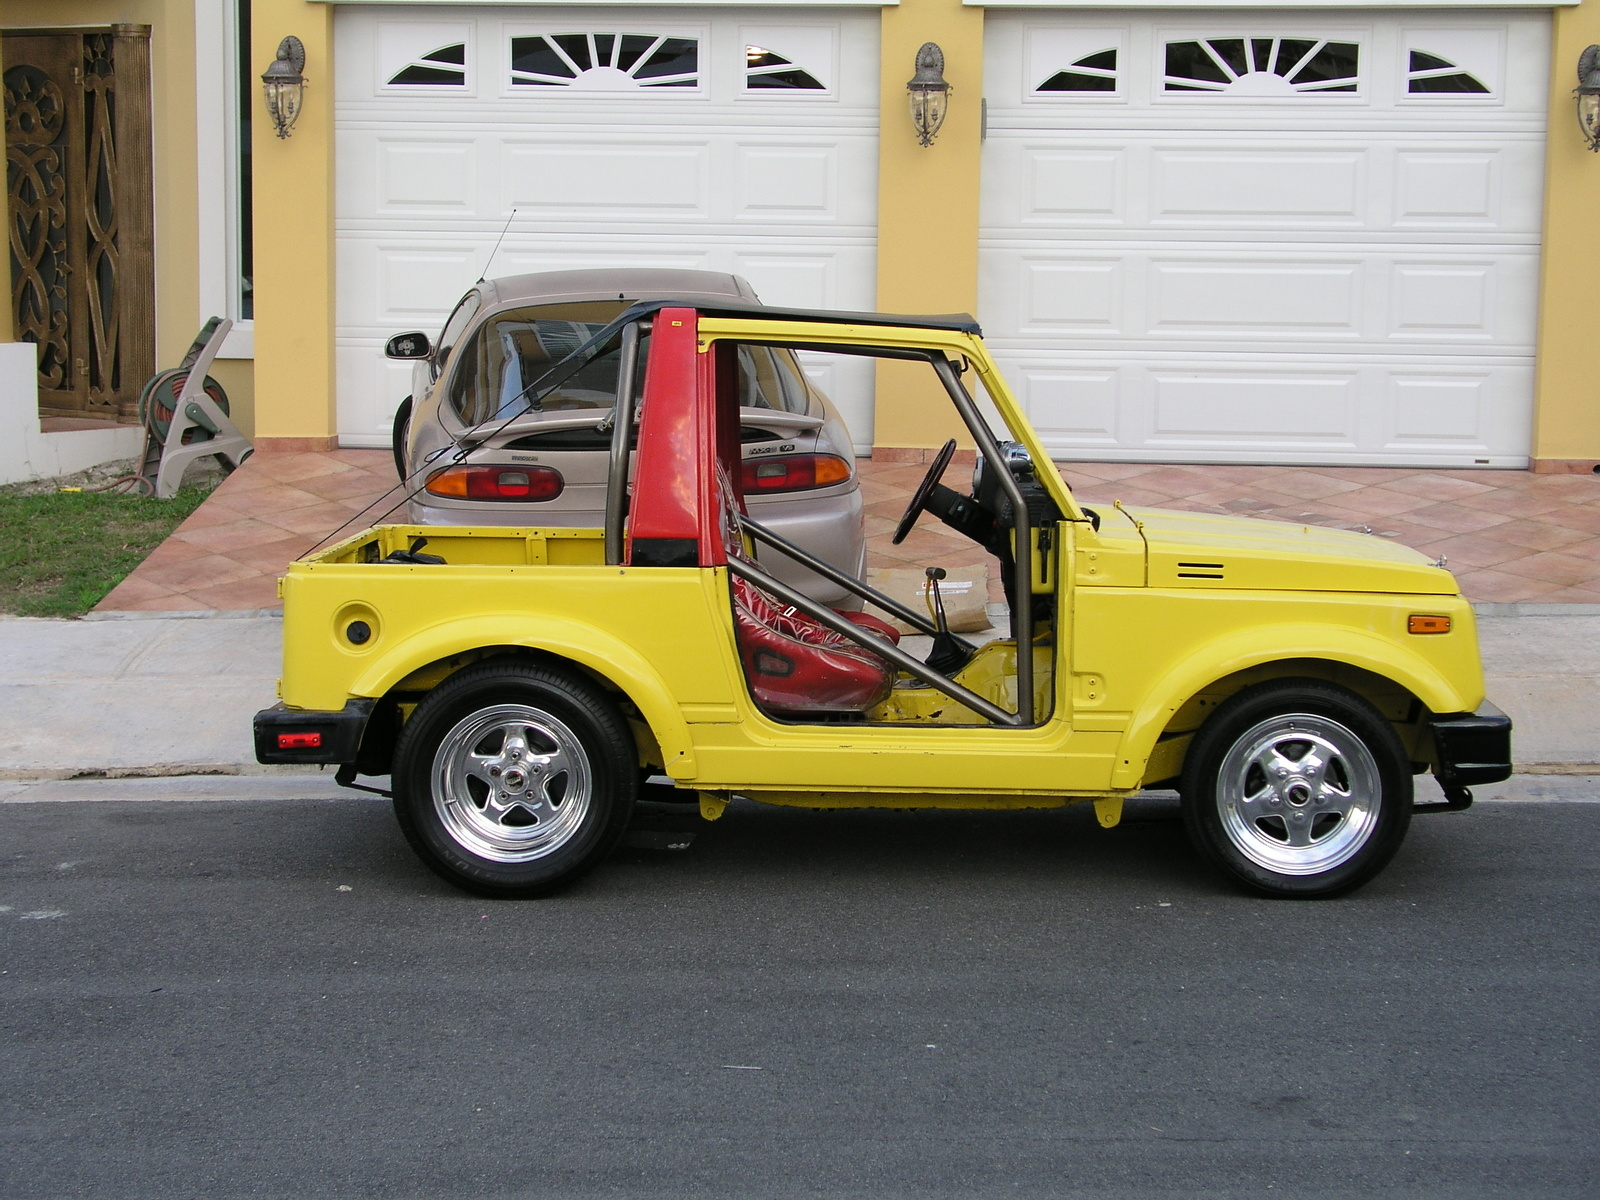 suzuki samurai ii 13 01 - This site contains high quality desktop wallpapers